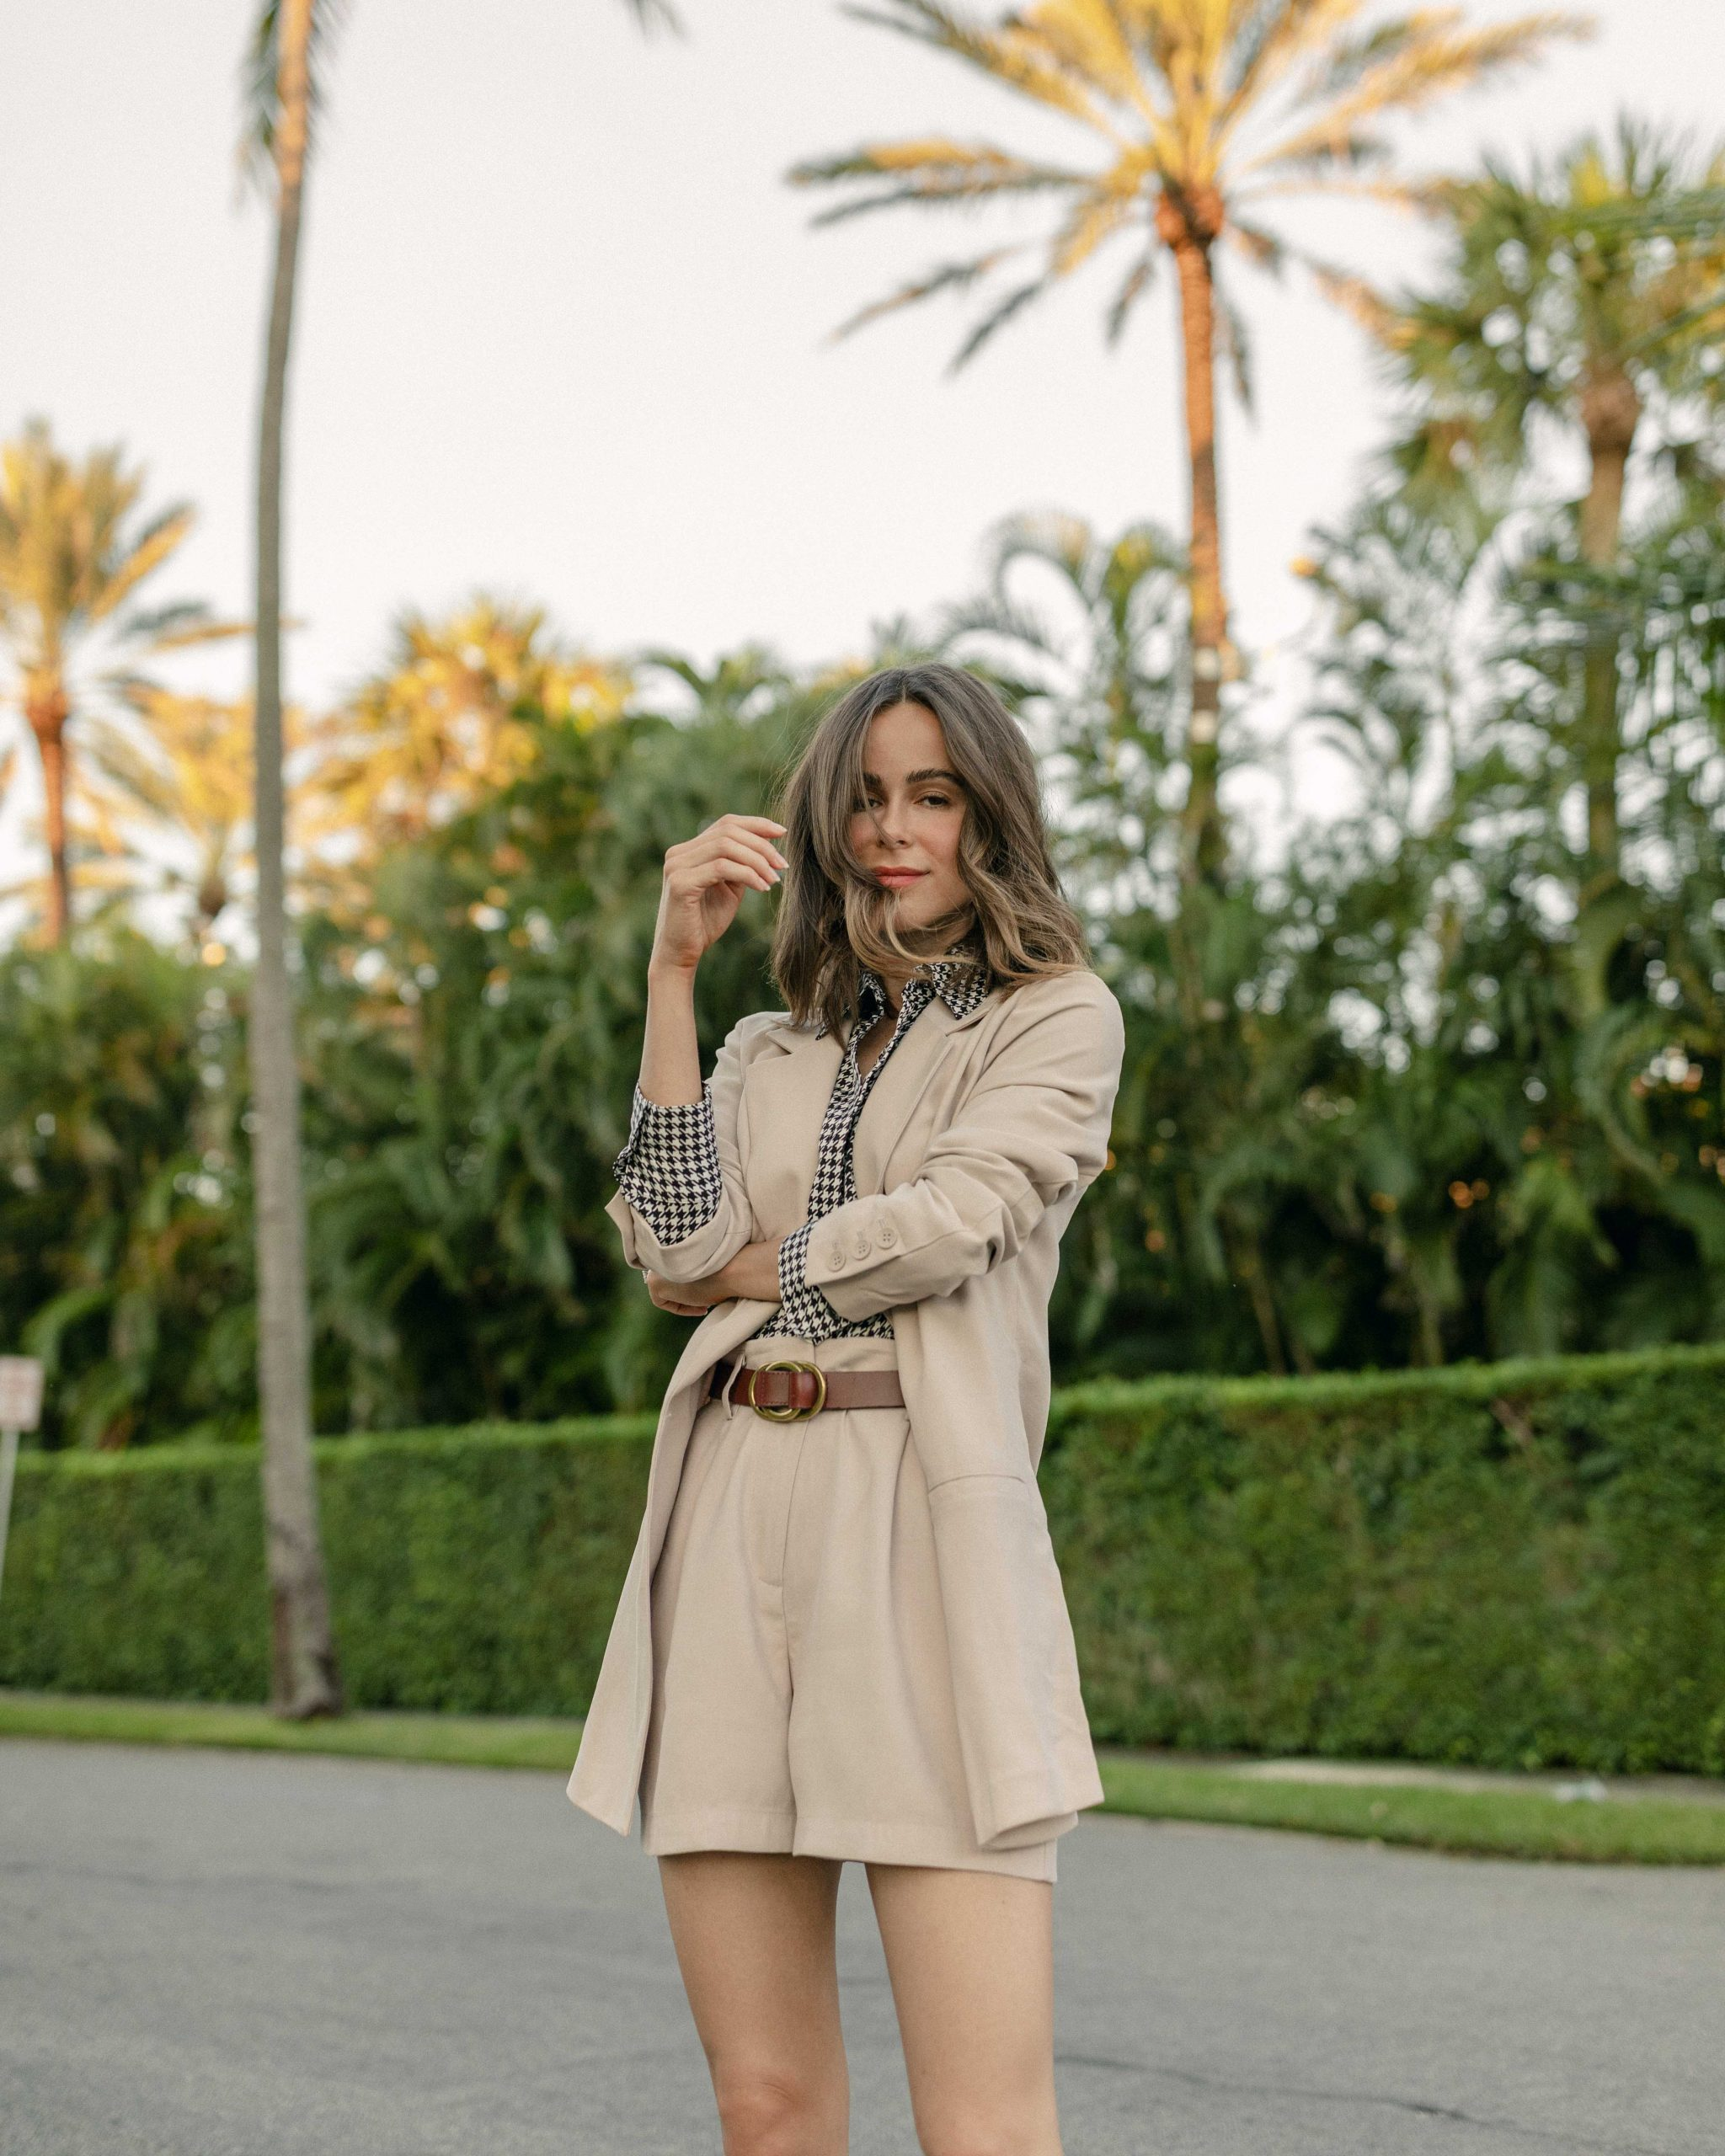 Fashion Blogger Stephanie Hill features Fall Layering in Florida on The Style Bungalow